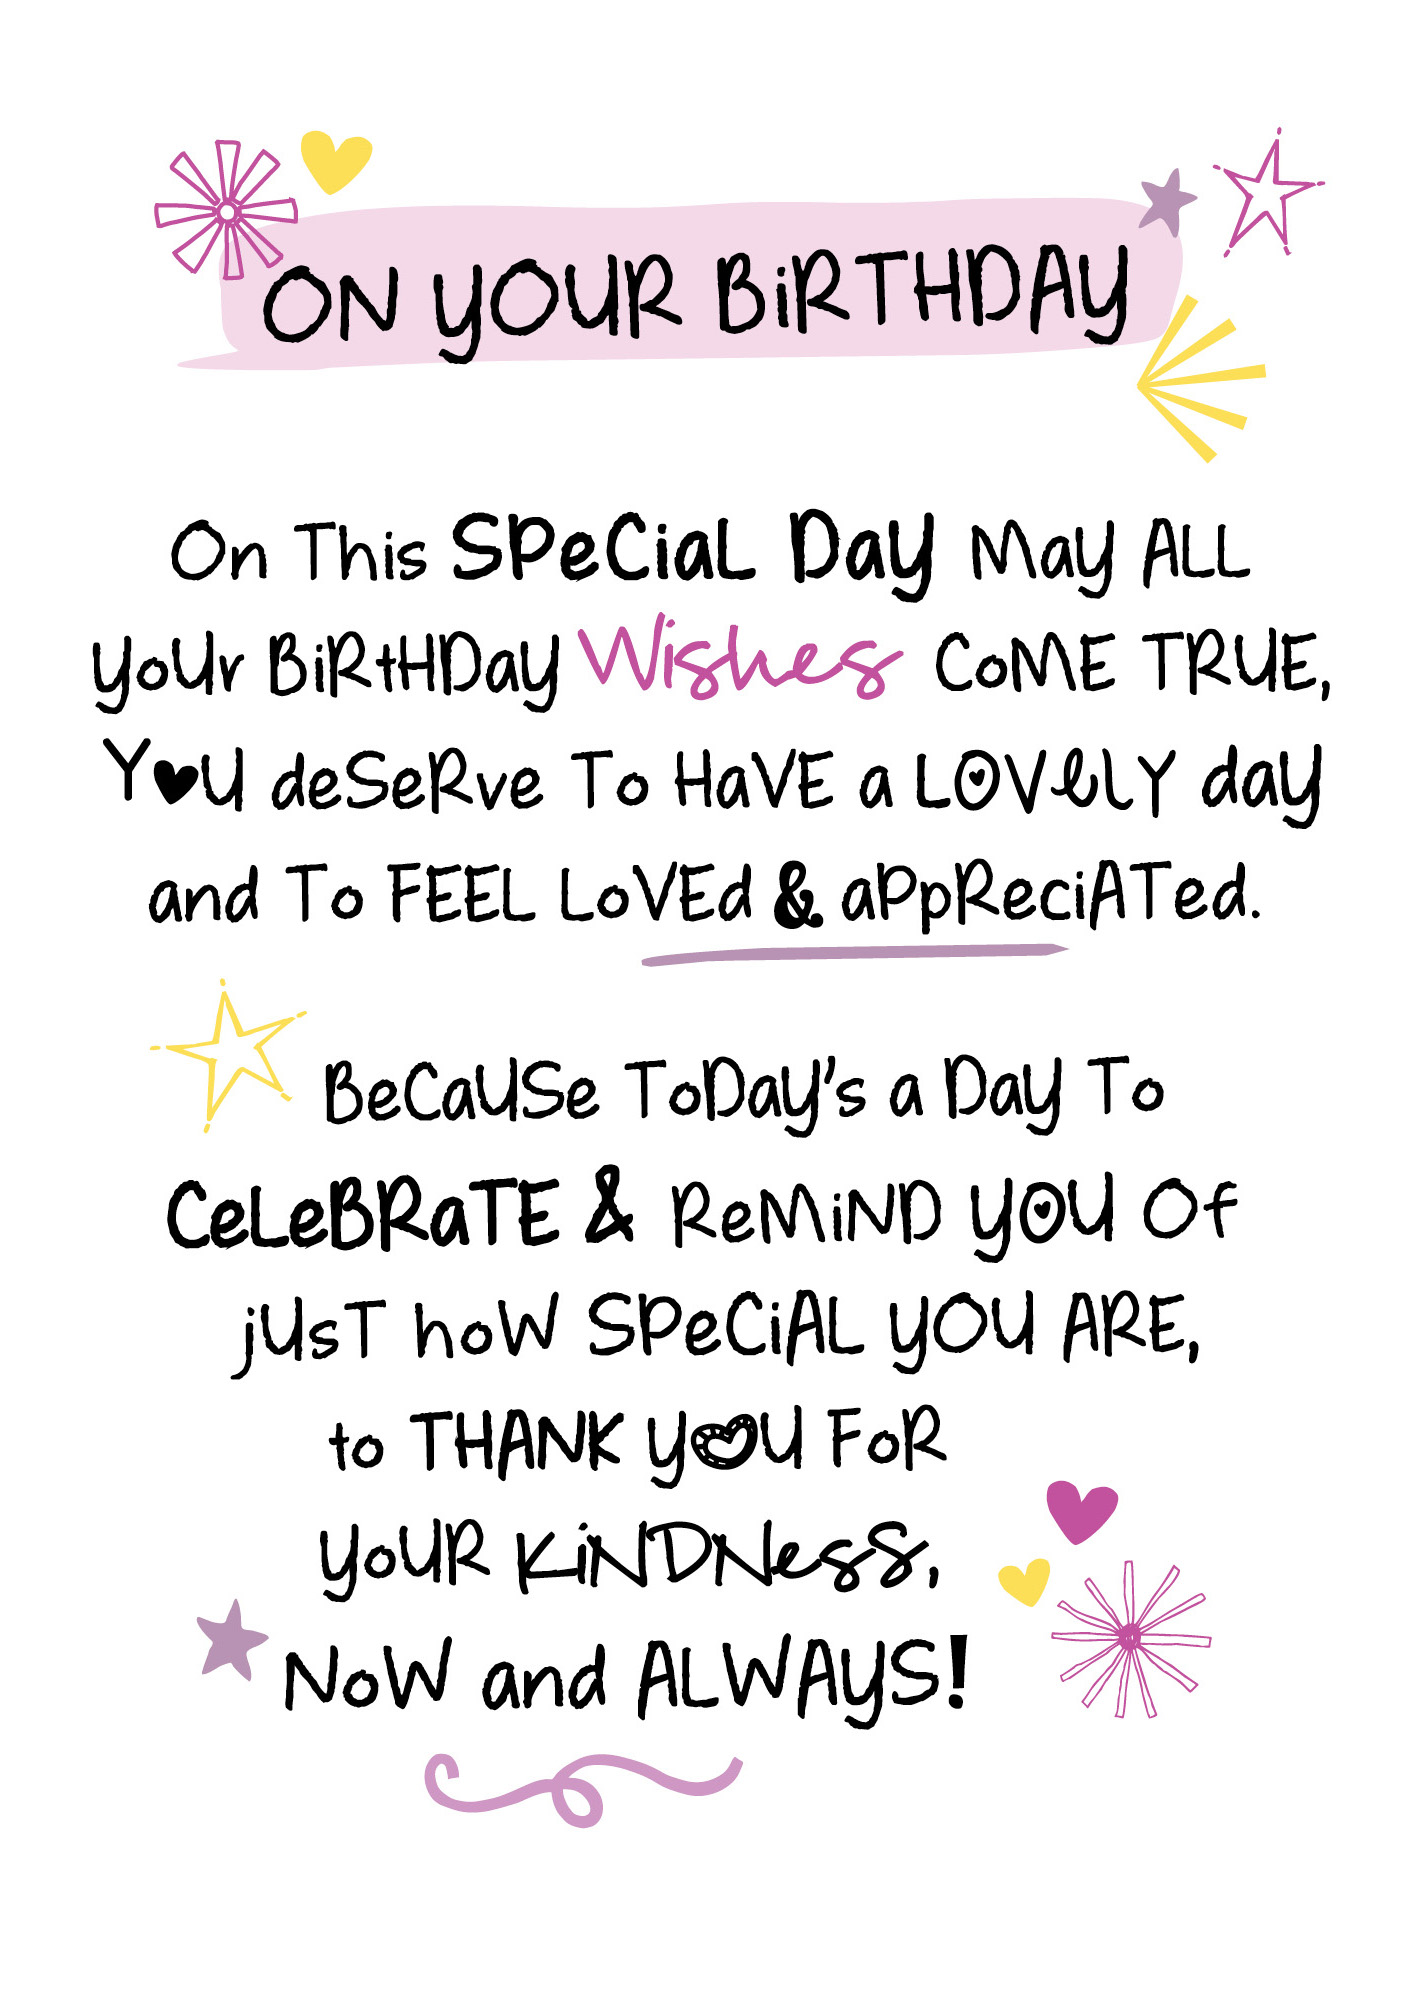 On Your Birthday Inspired Words Greeting Card Blank Inside